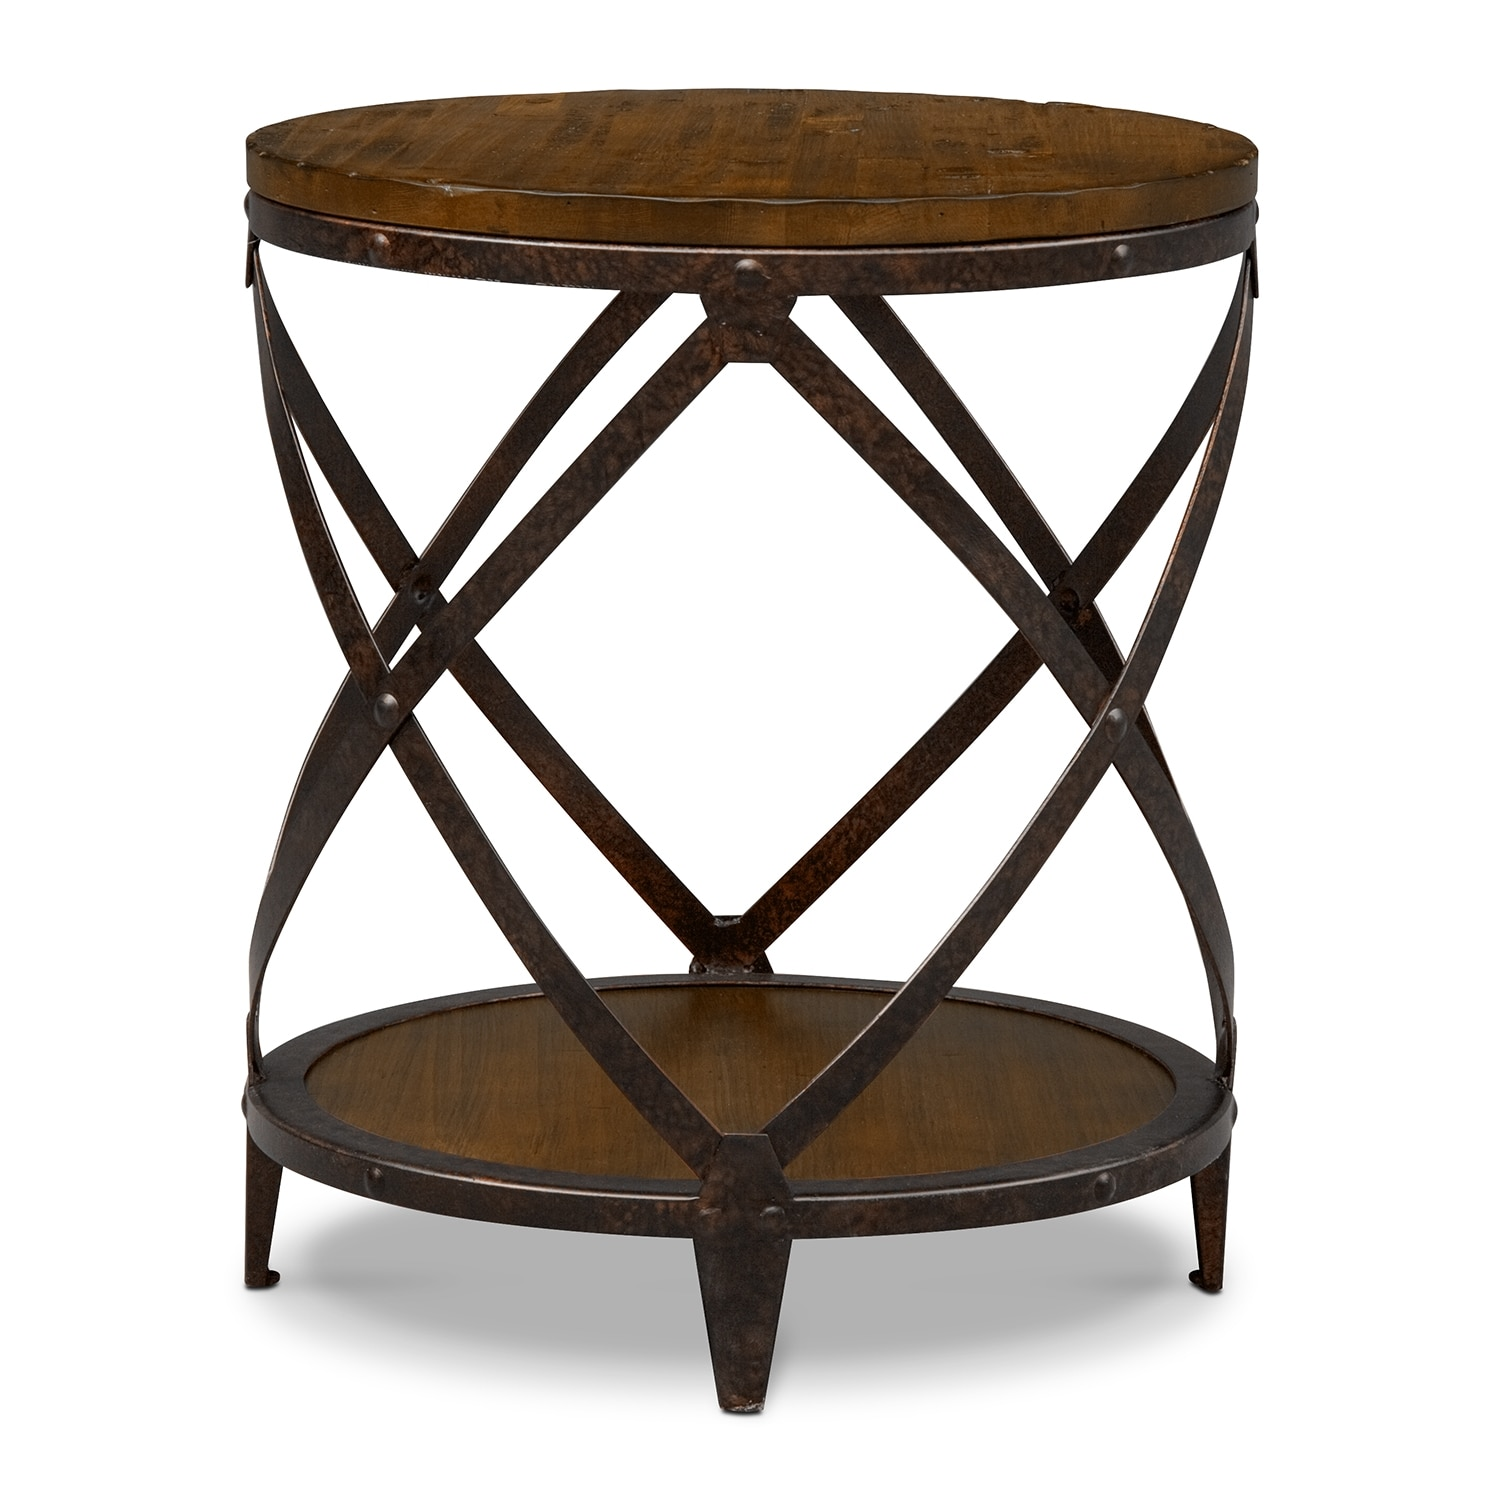 Shortline Round End Table - Distressed Pine